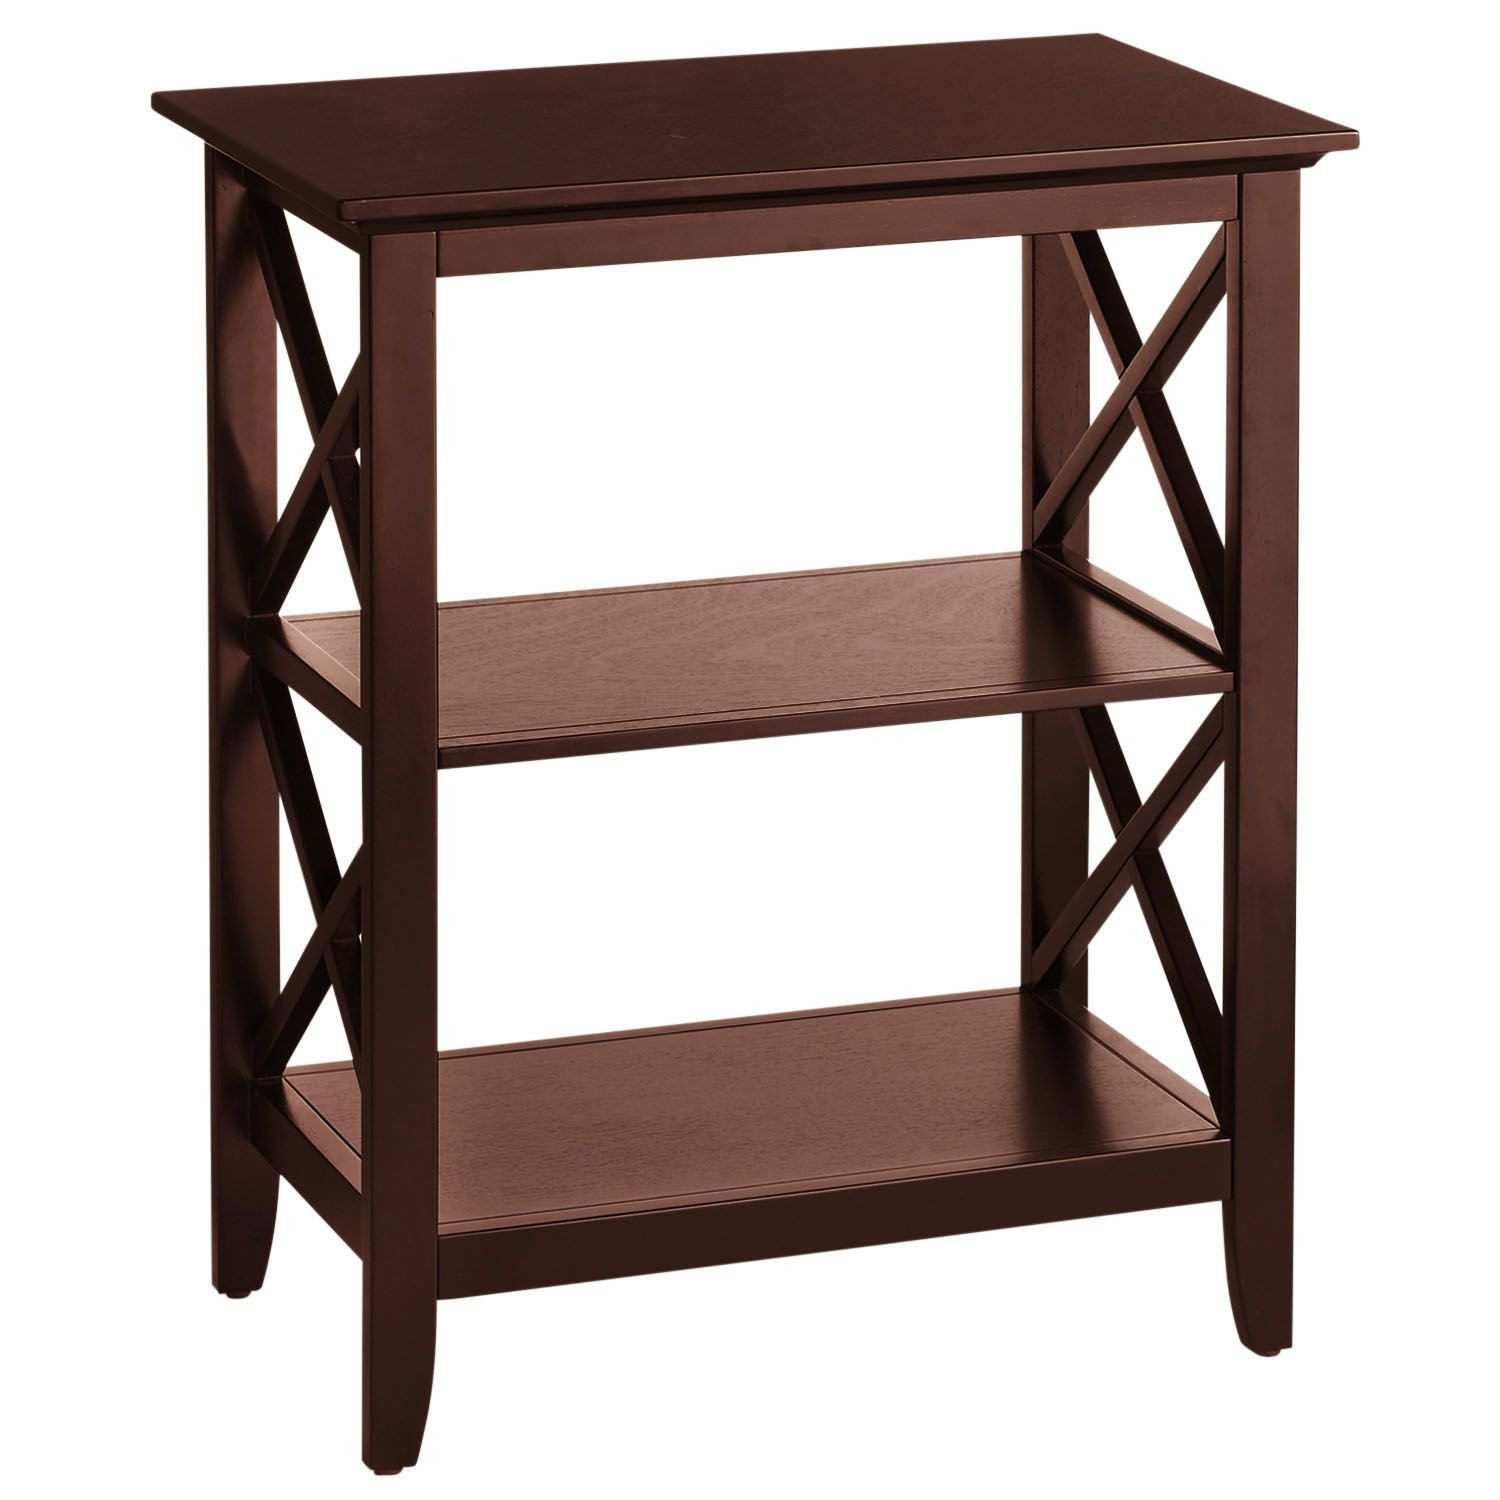 pier one accent tables for leaf table ideas stunning kenzie espresso brown anywhere yellow target marble side living room currey and company lighting solid wood corner drop end